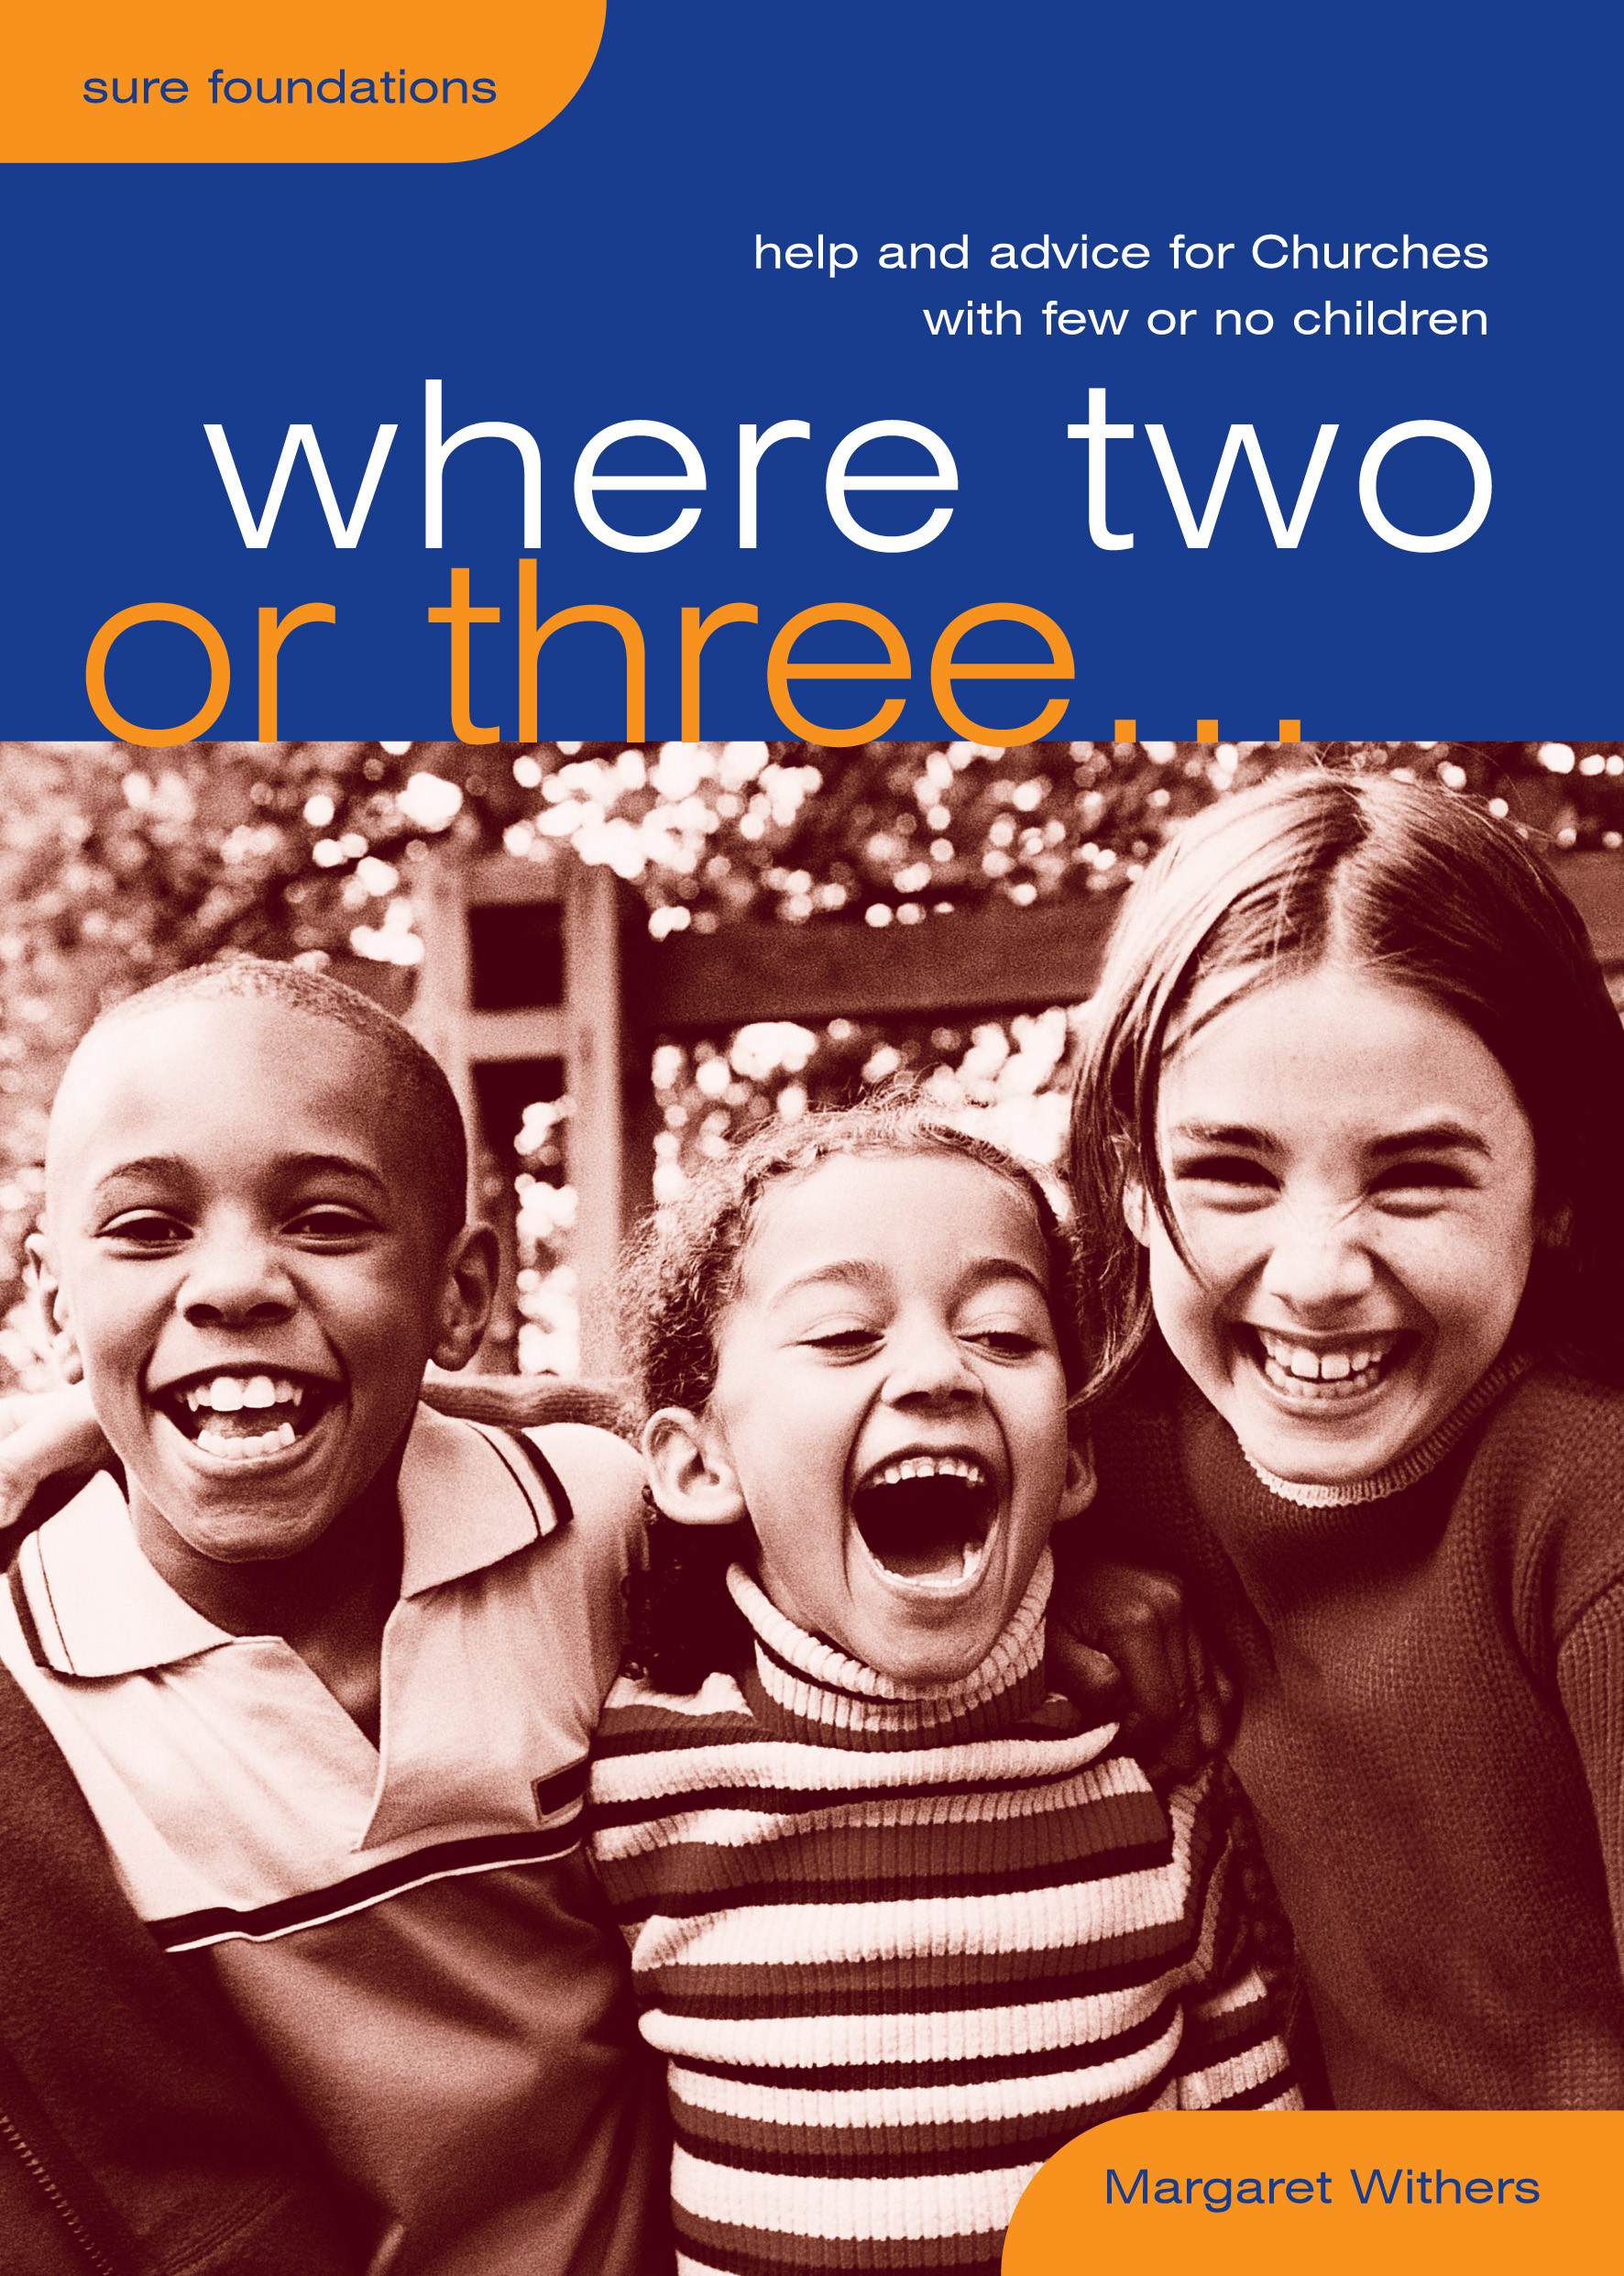 Where Two or Three...: Help and advice for churches with few or no children